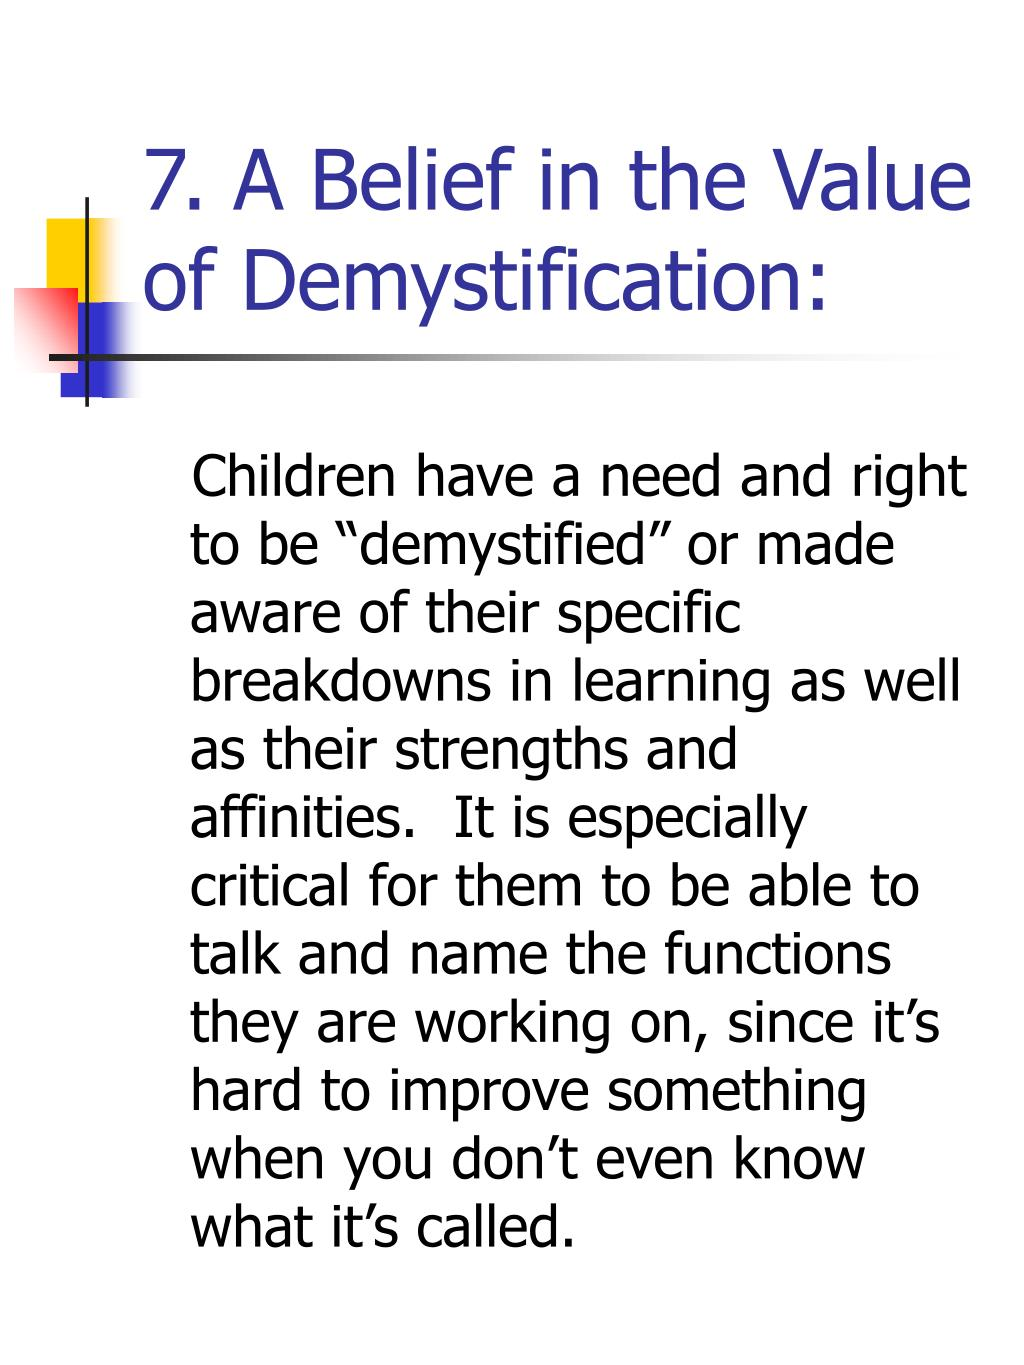 7. A Belief in the Value of Demystification: